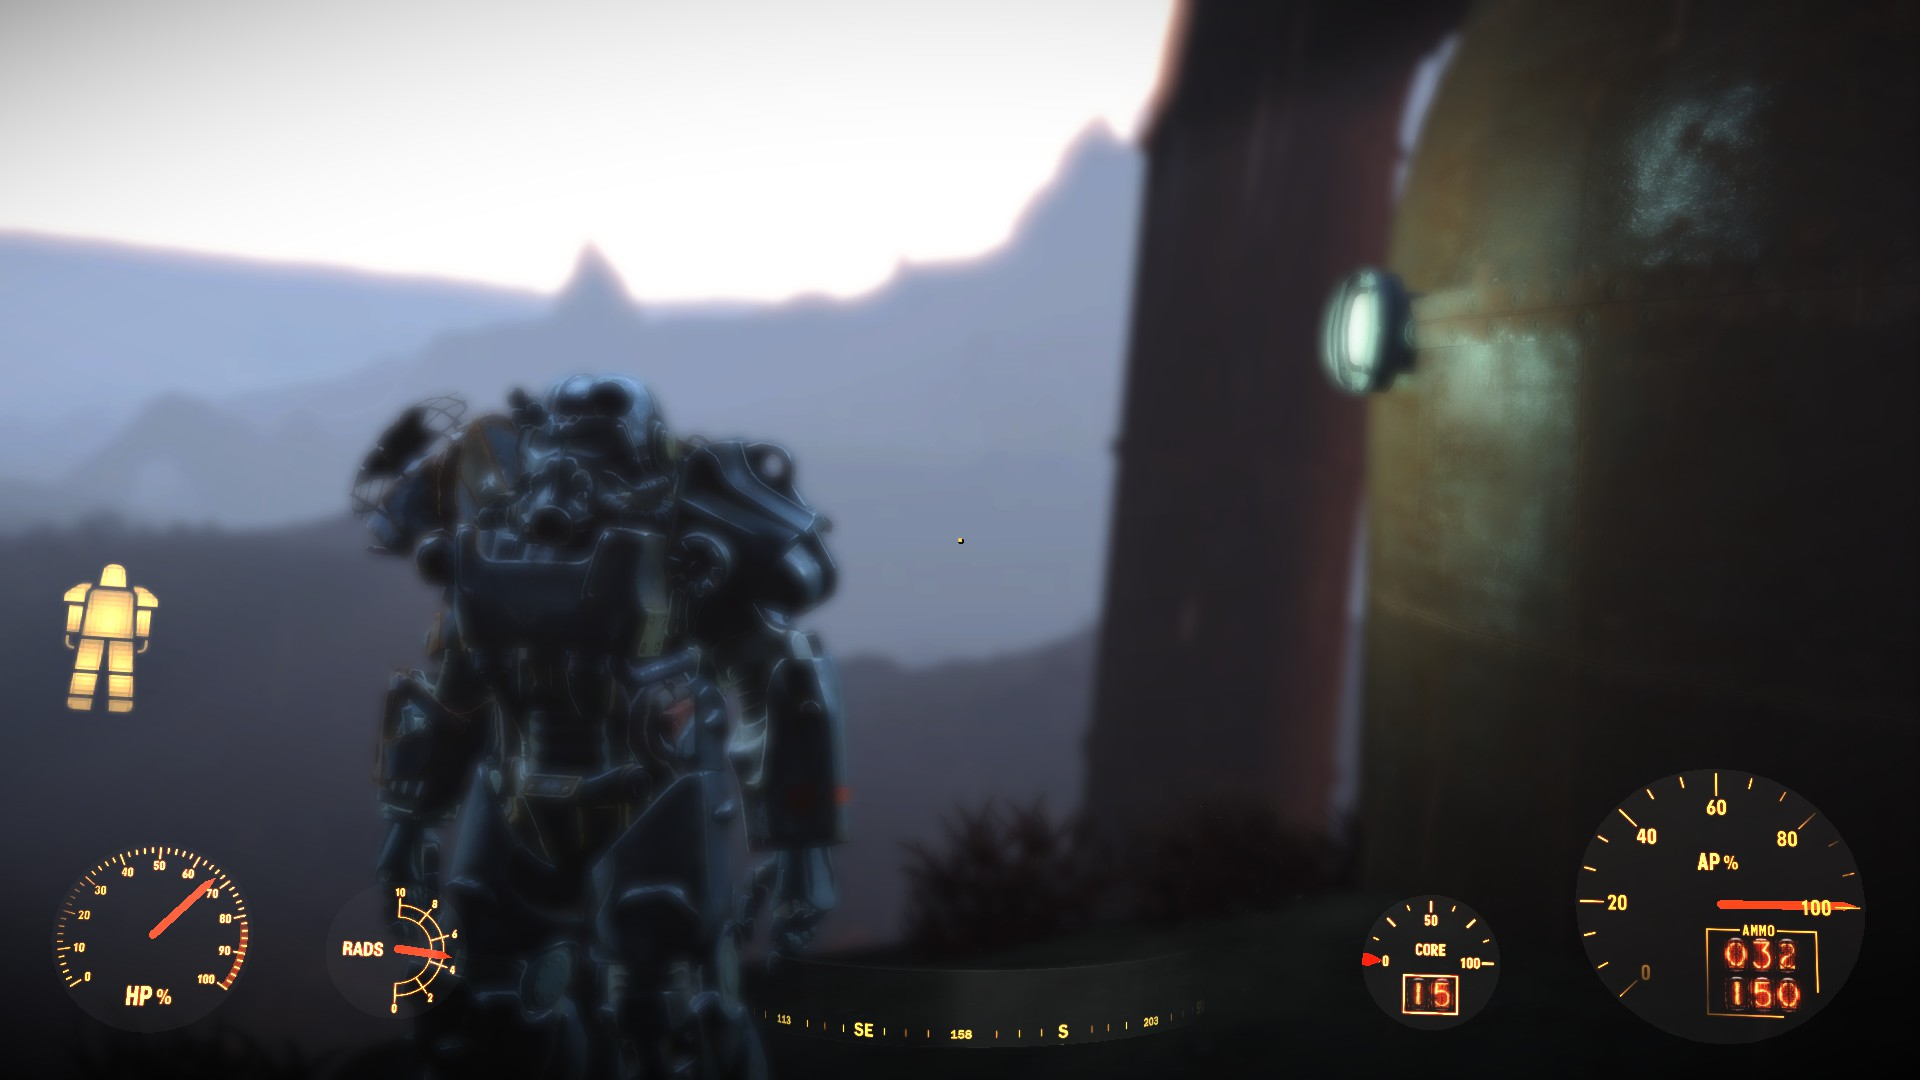 Underwater structures found in Fallout 4